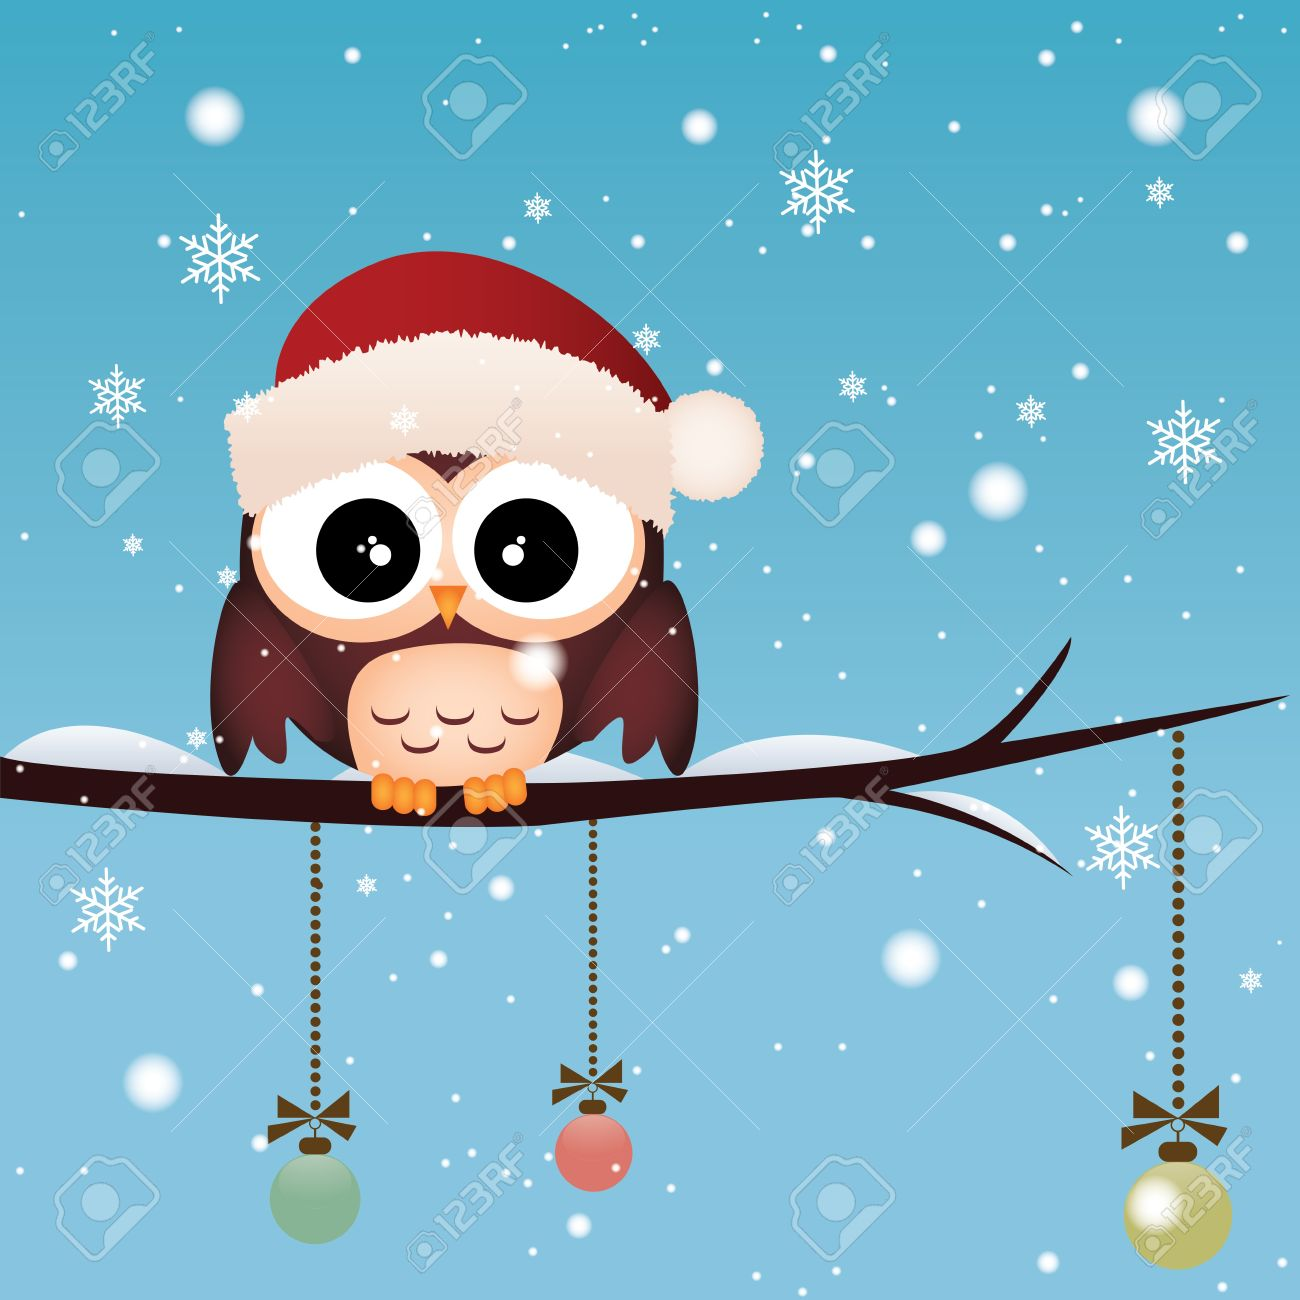 Cute Owl With A Christmas Cap On Special Winter Sky Background Stock Vector